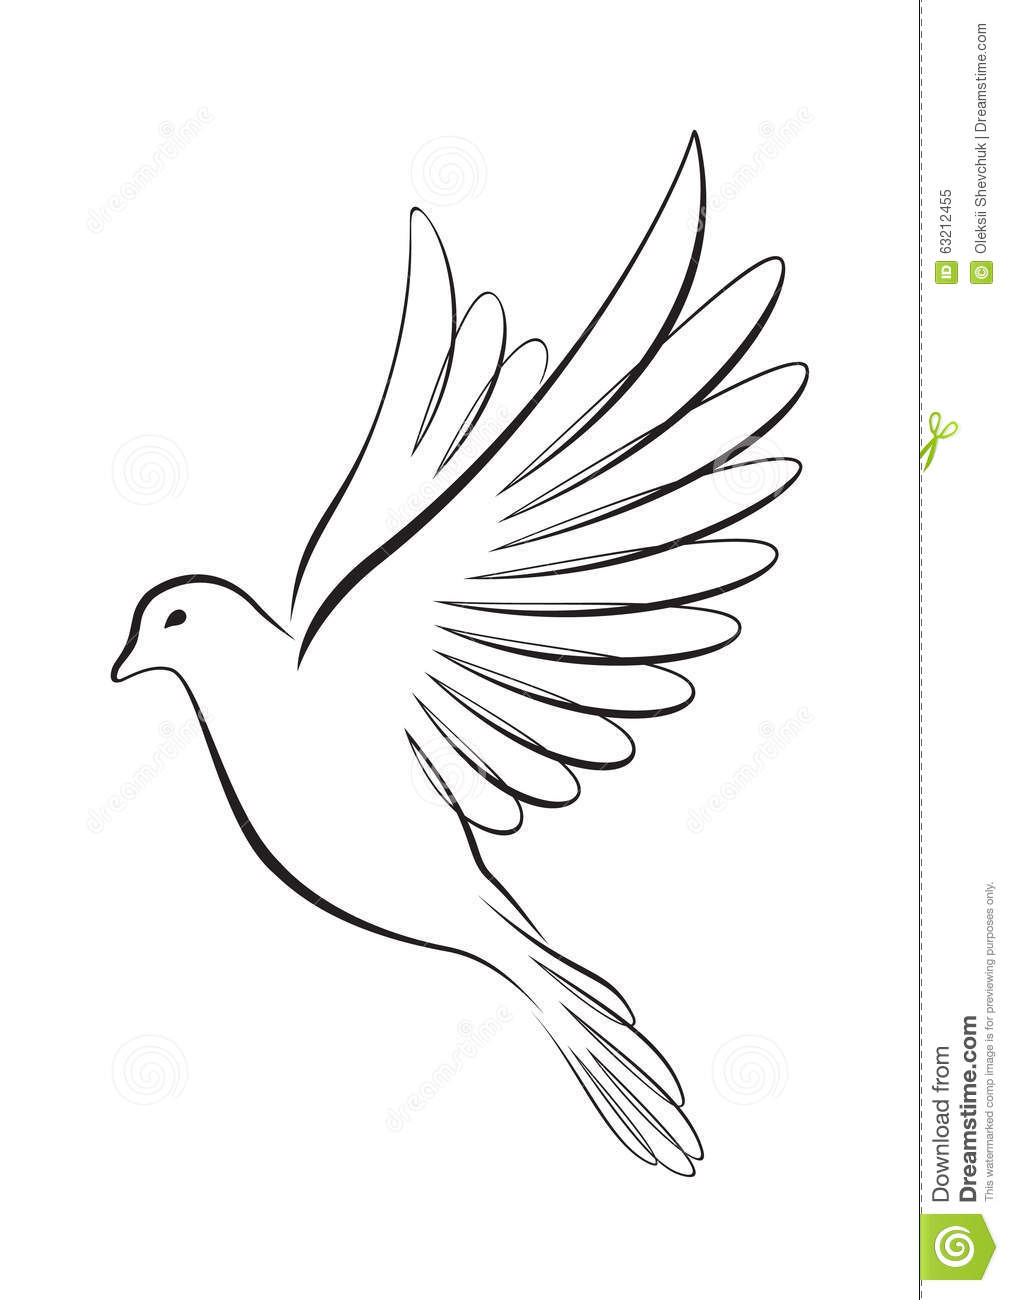 Line Art Dove : Line art style flying dove stock vector illustration of